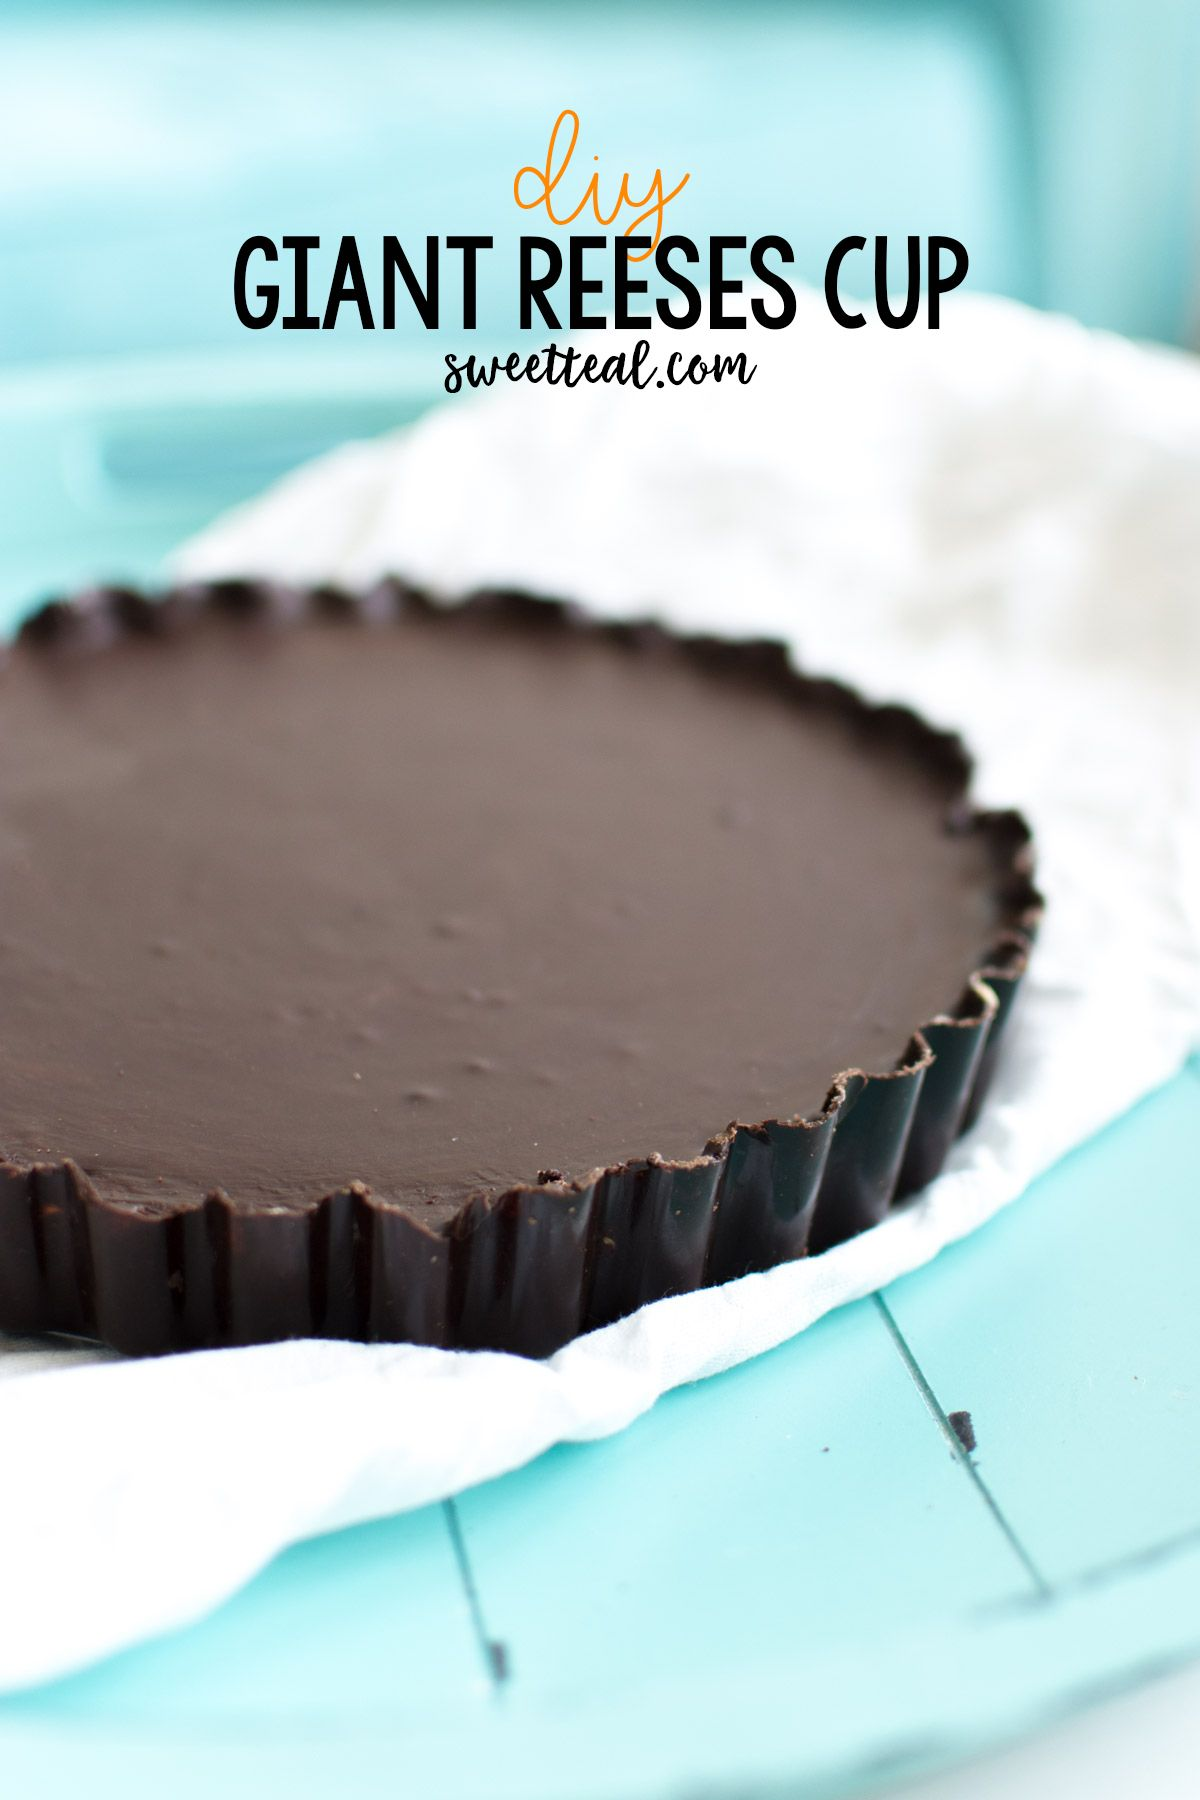 DIY Giant Reeses Cup | Giant reese's cup, Reeses cake, Homemade reeses cups